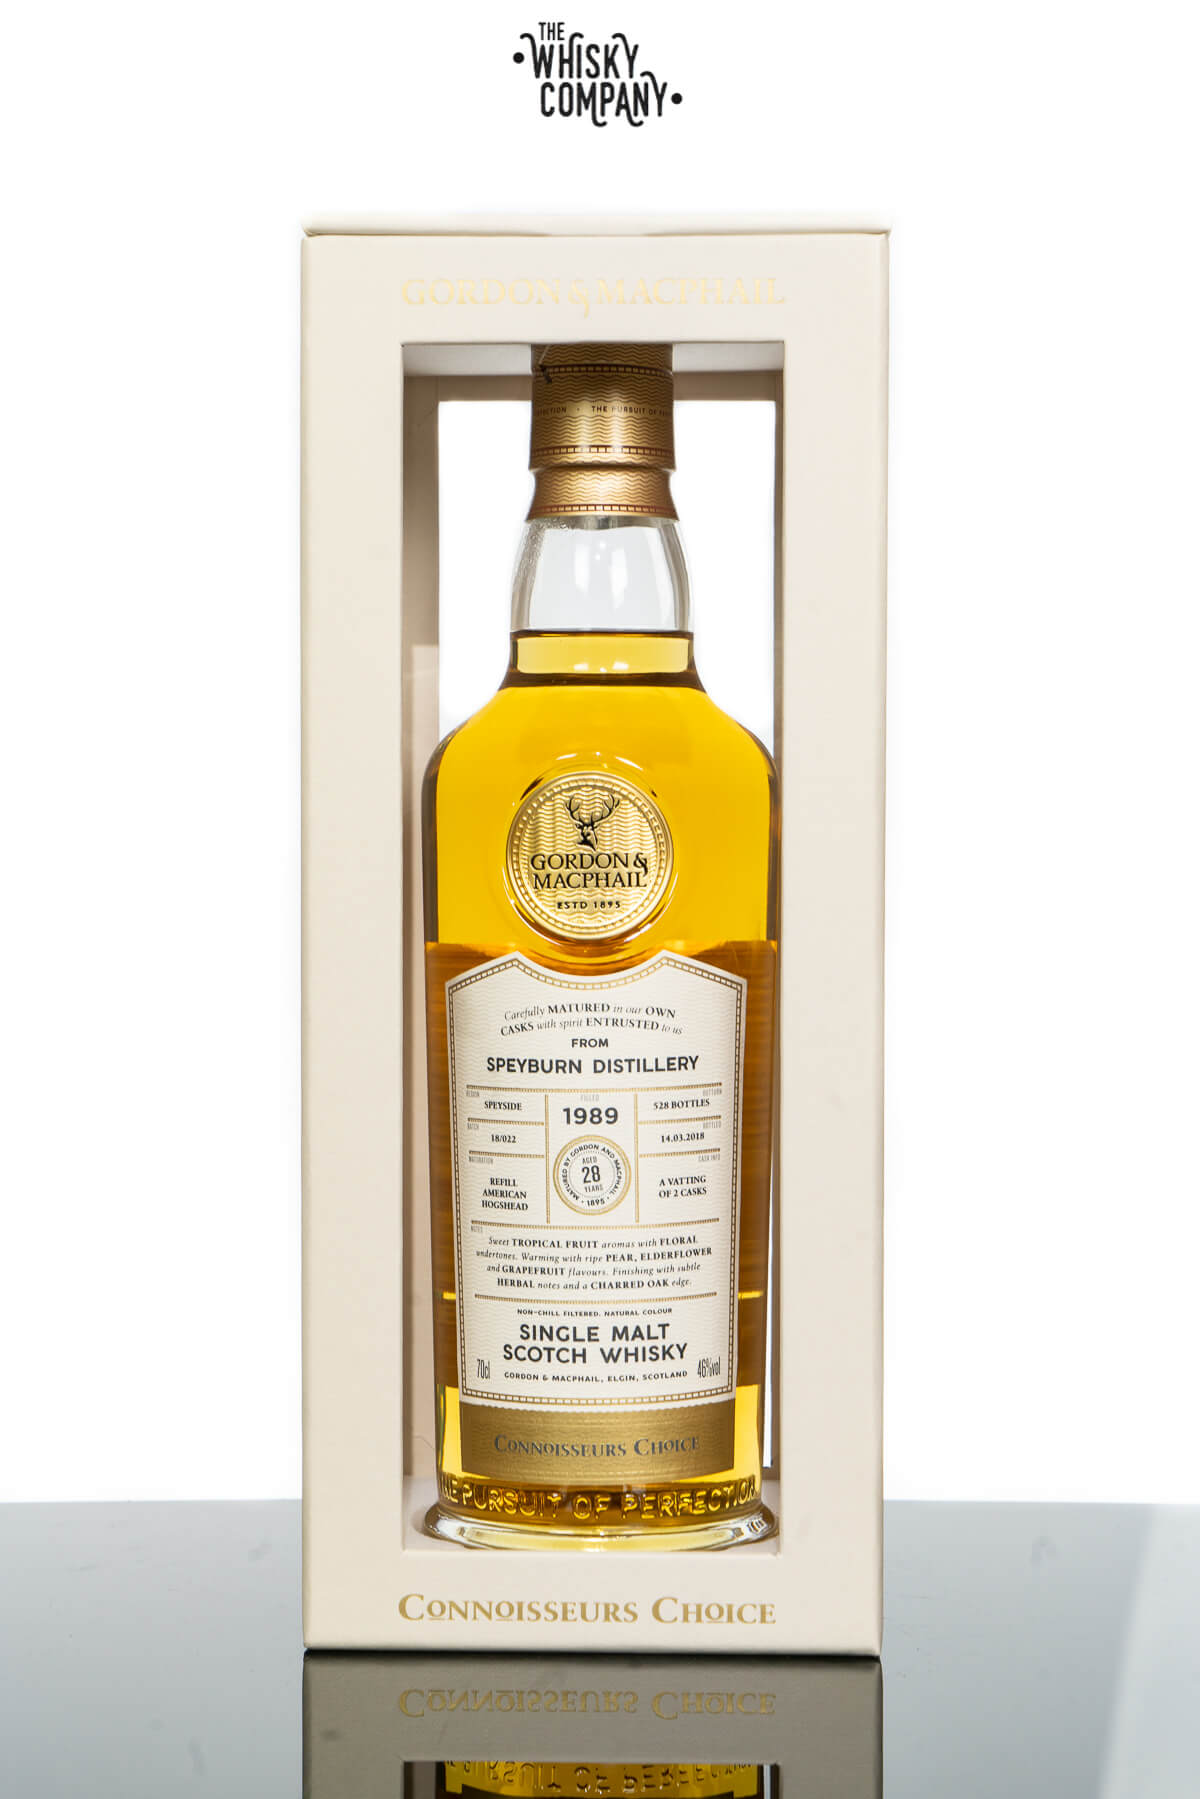 Speyburn 28 Years Old 1989 Speyside Single Malt Scotch Whisky Gordon & MacPhail (700ml)